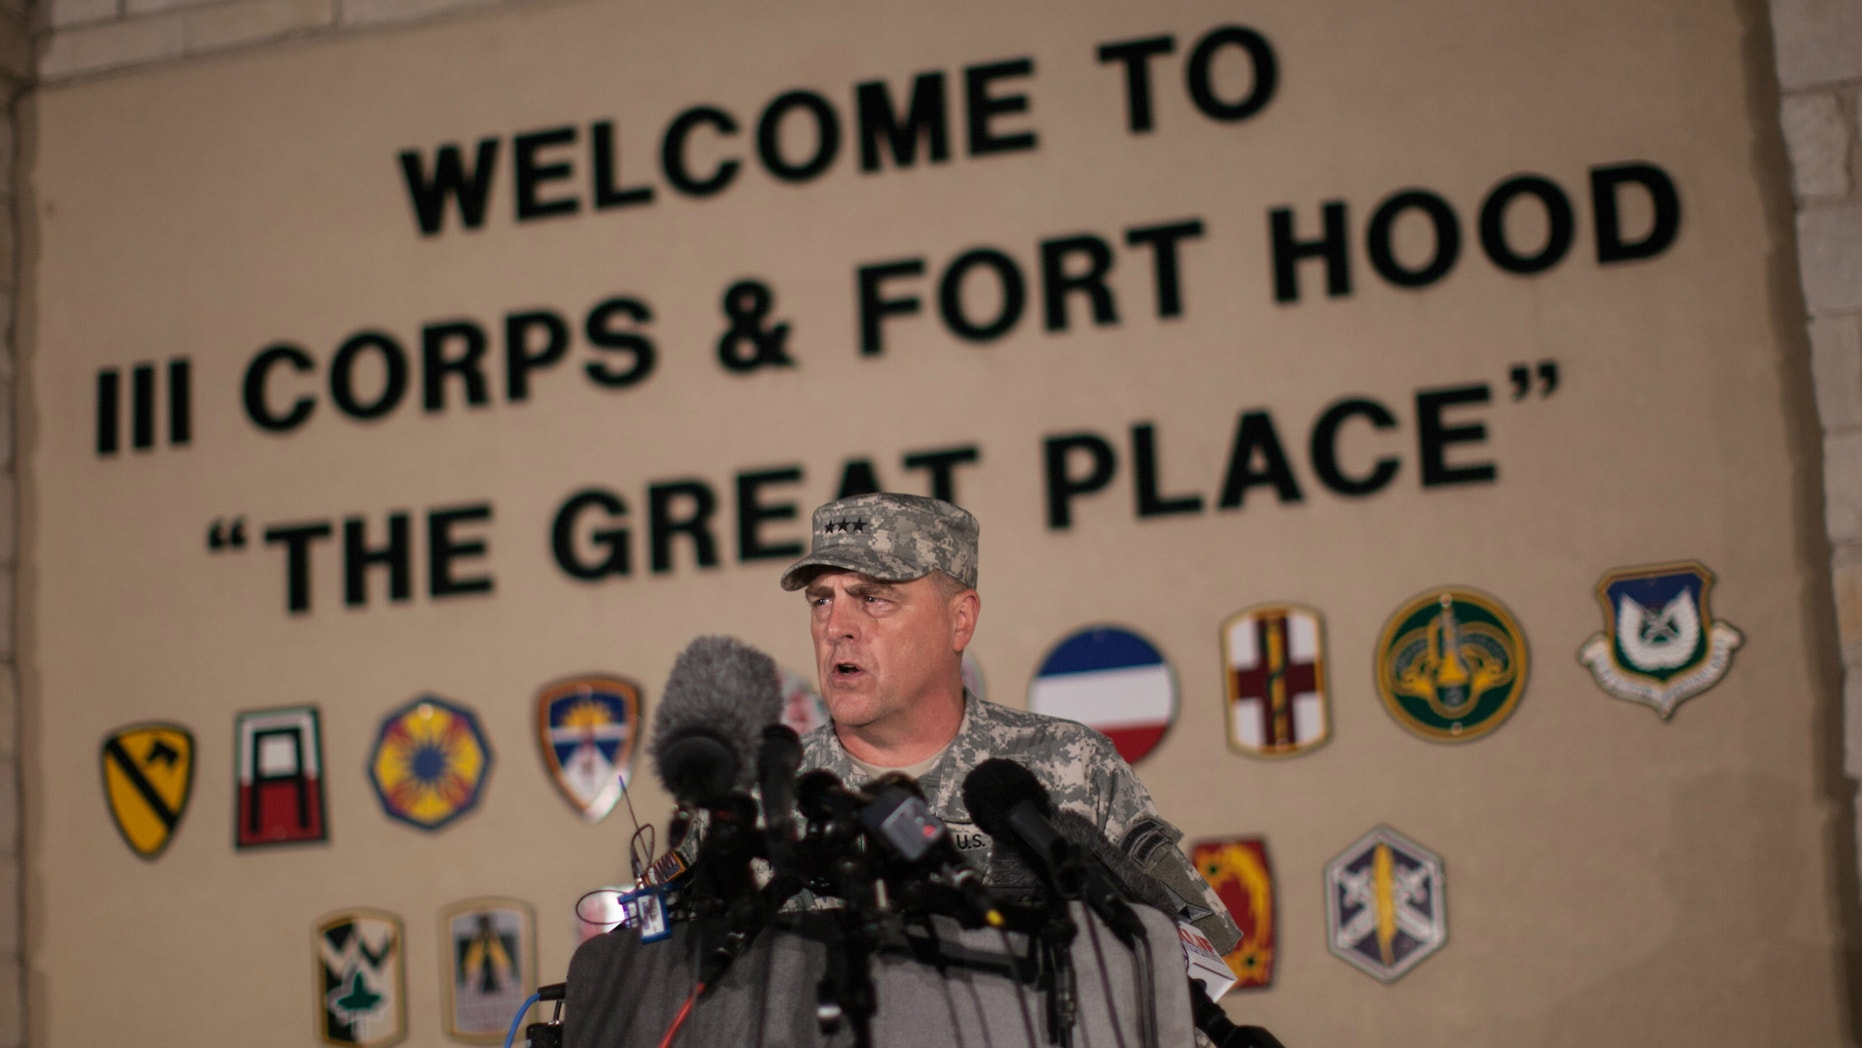 Lt. Gen. Mark Milley, commanding general of III Corps and Fort Hood, speaks with the media outside of an entrance to the Fort Hood military base following a shooting that occurred inside, Wednesday, April 2, 2014, in Fort Hood, Texas.